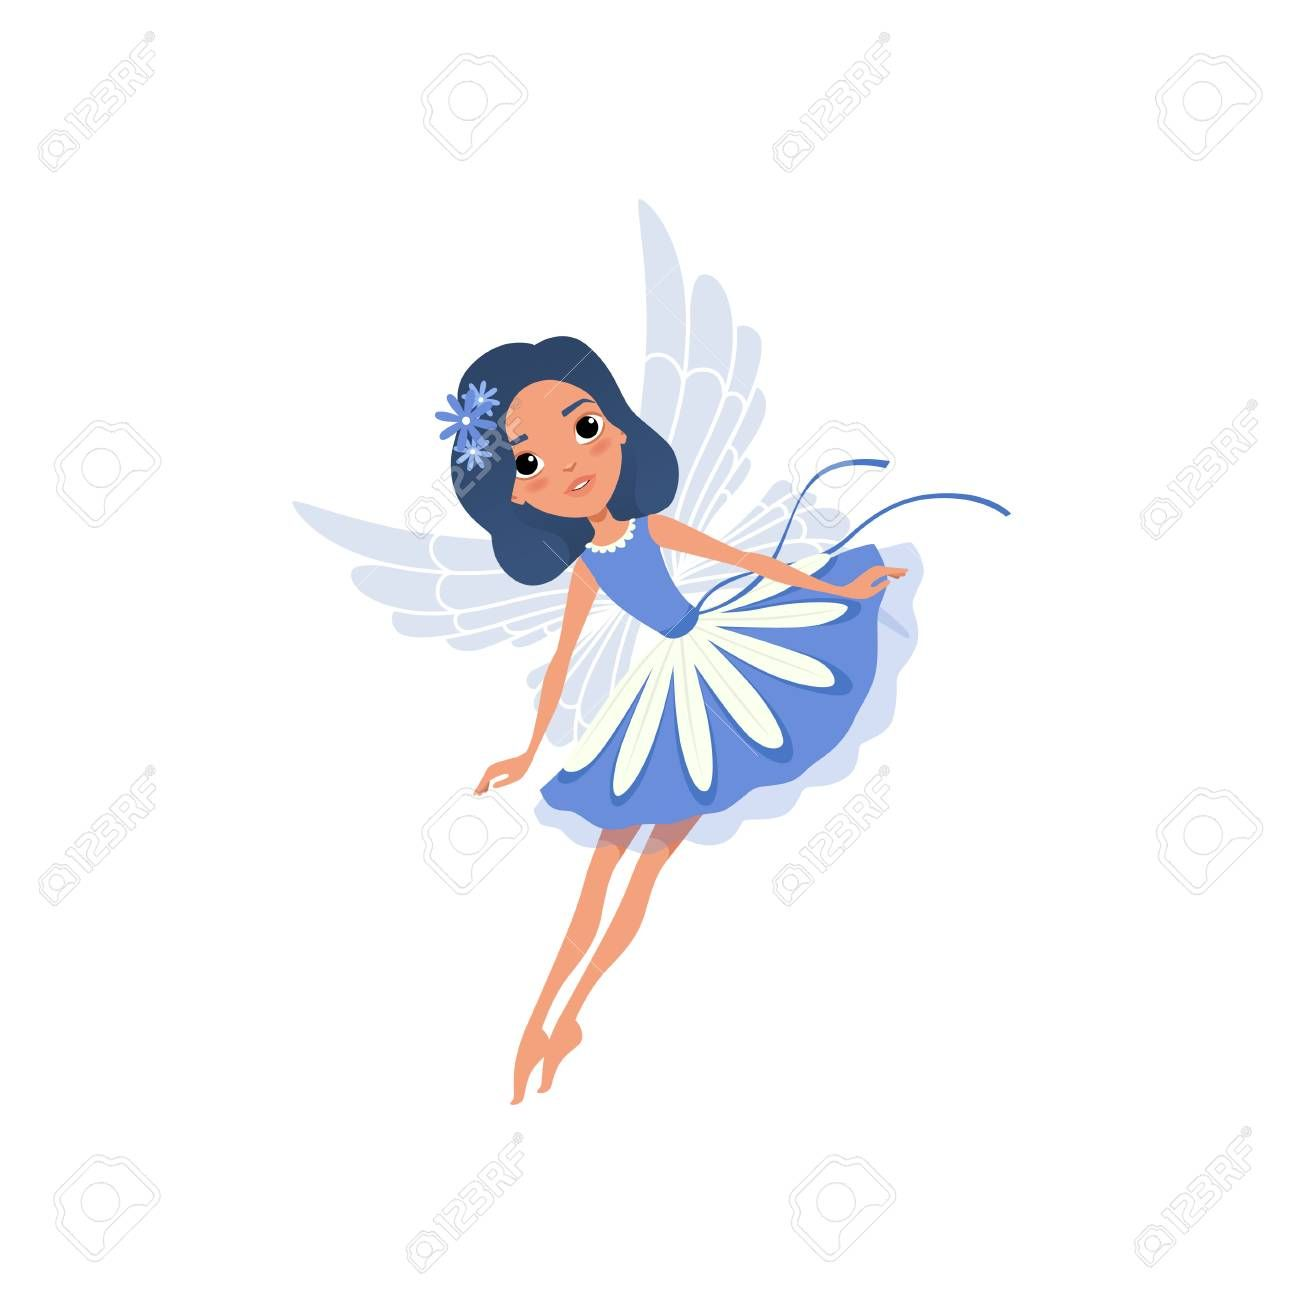 Little pixie in blue fancy dress. Cartoon fairy with magic wings and floral accessories in hair. Cute fairytale character in flying action. Colorful flat vector design isolated on white background. Illustration ,